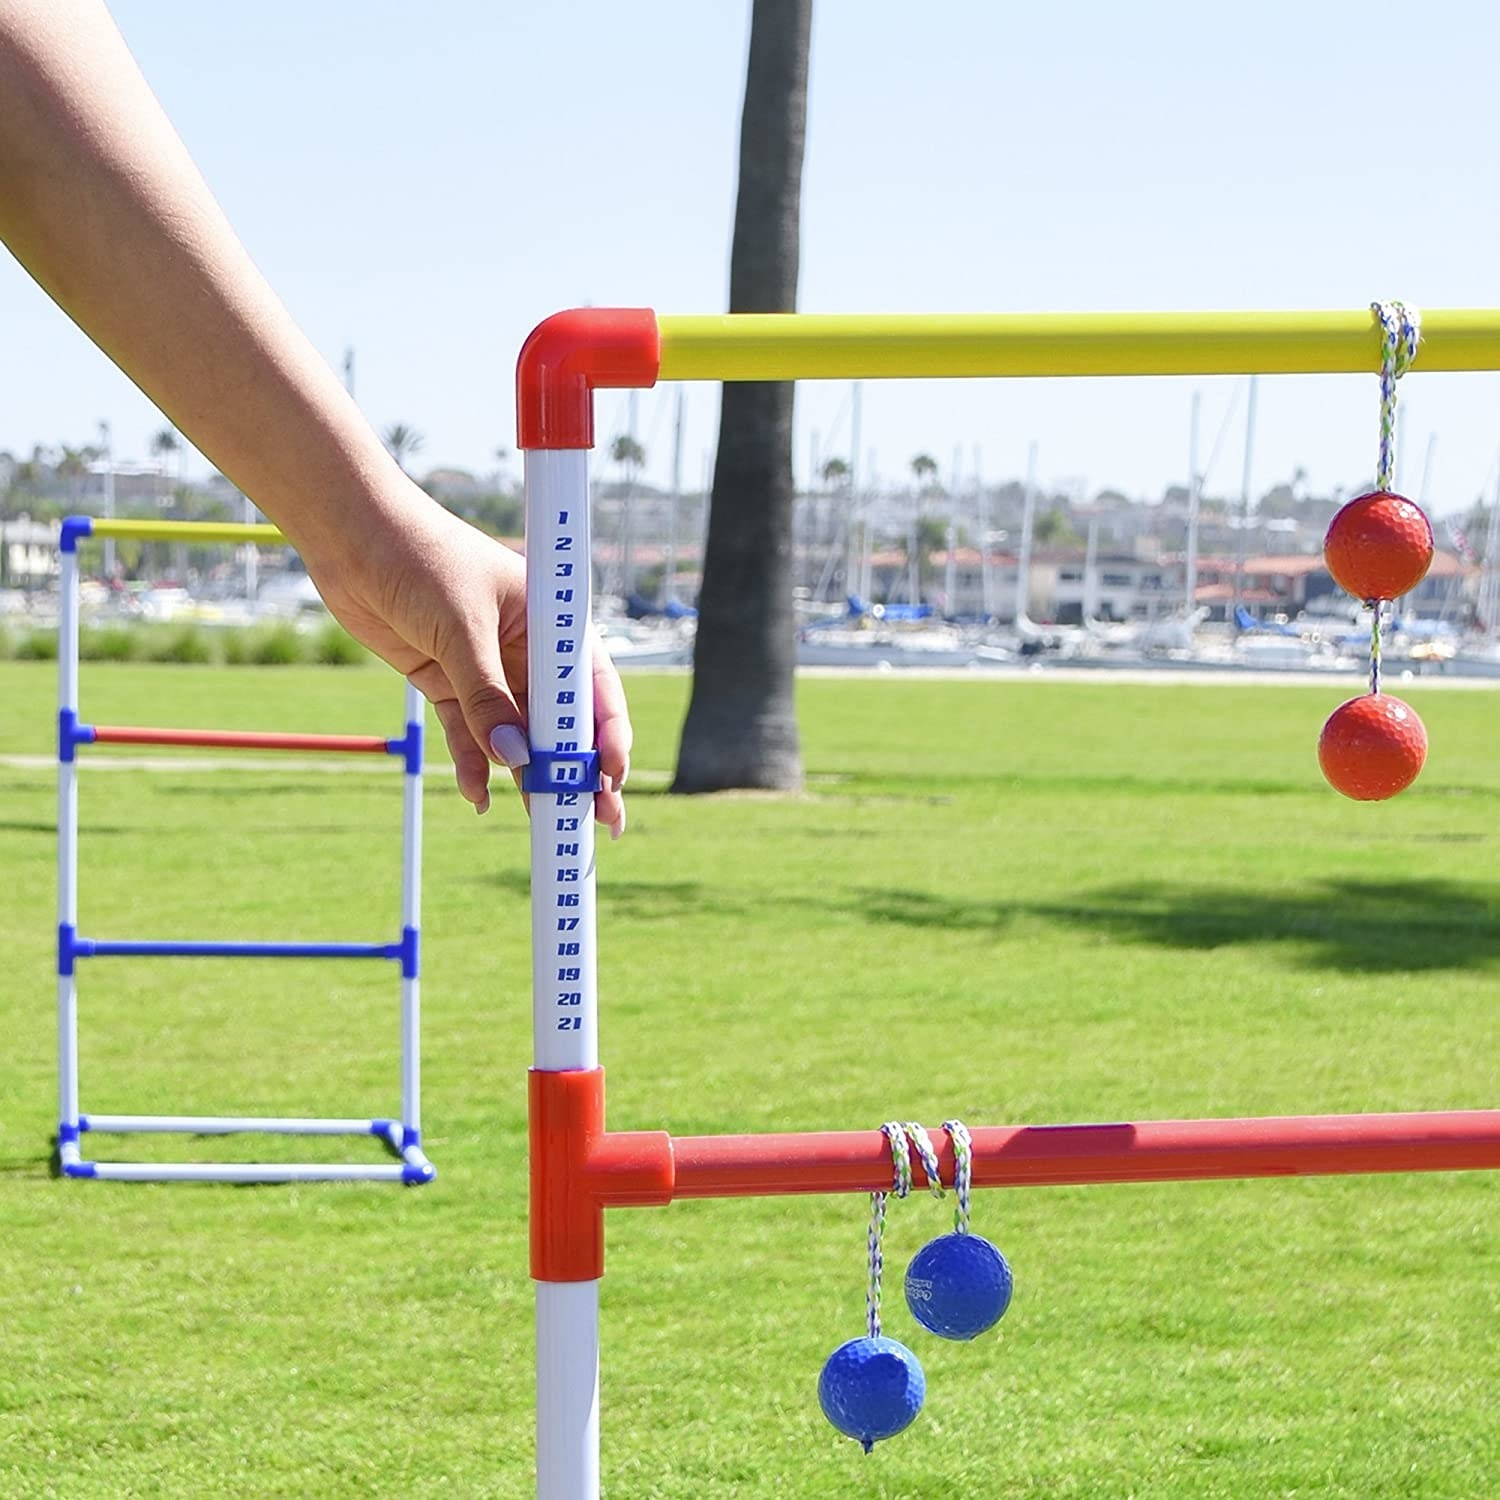 model slides the market on the score keeper on the ladder while two pairs of balls connected with string dangle on the rungs